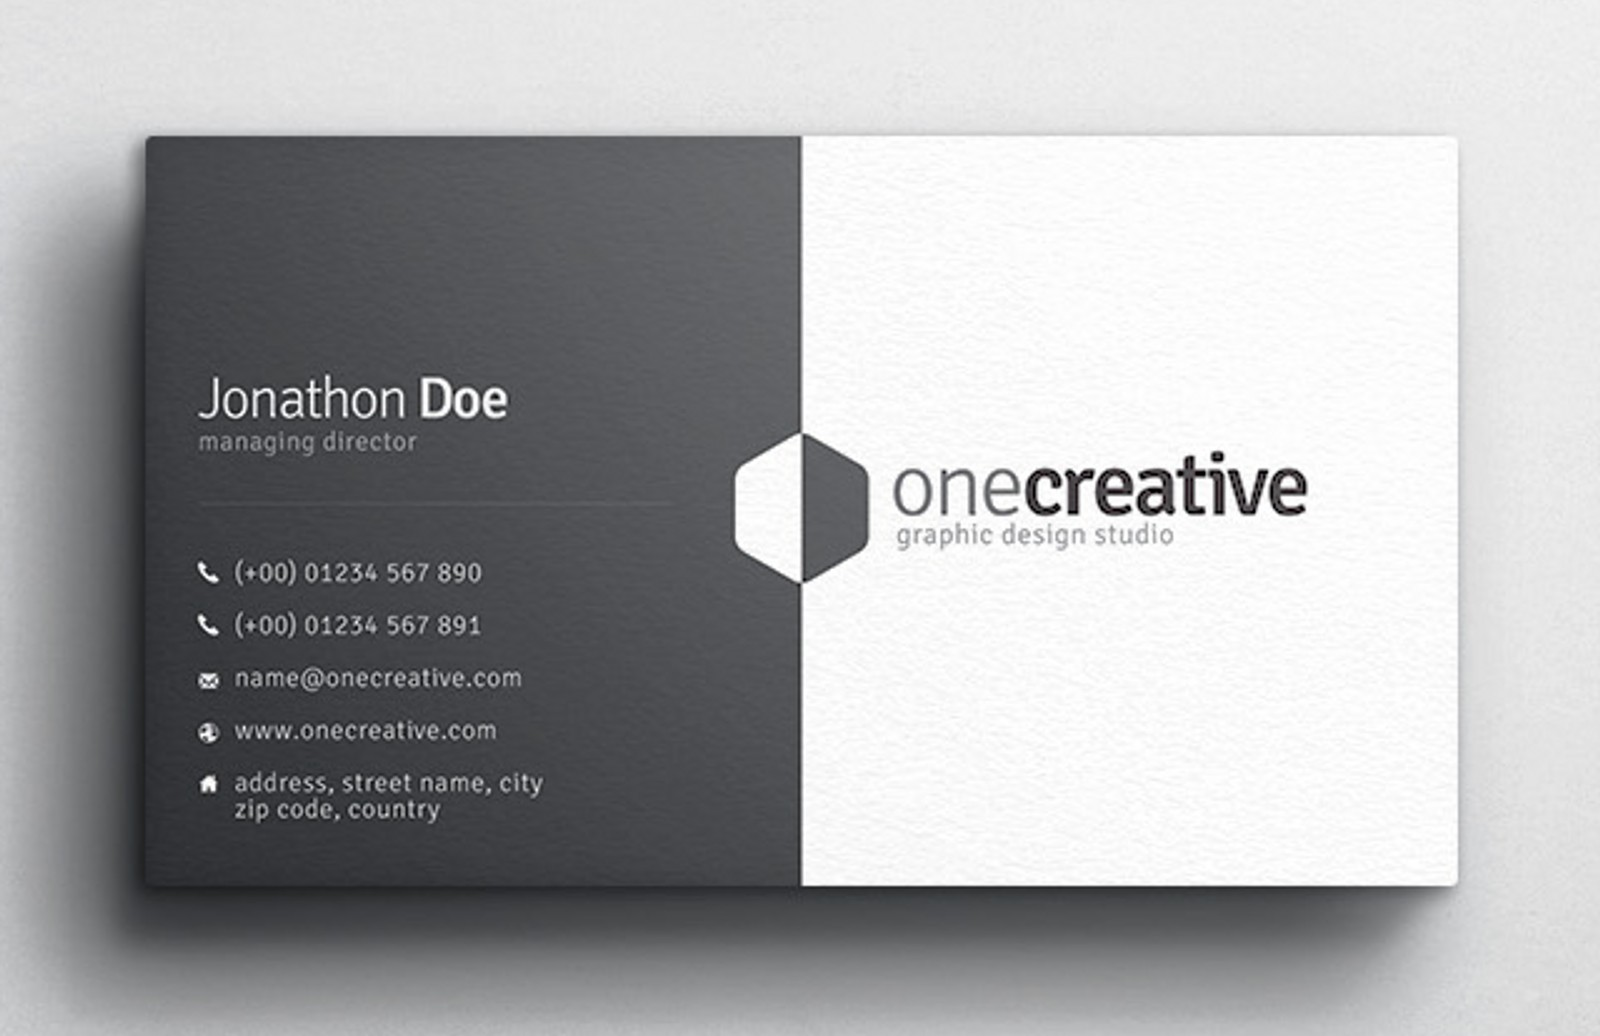 Duo business card design medialoot duo business card design wajeb